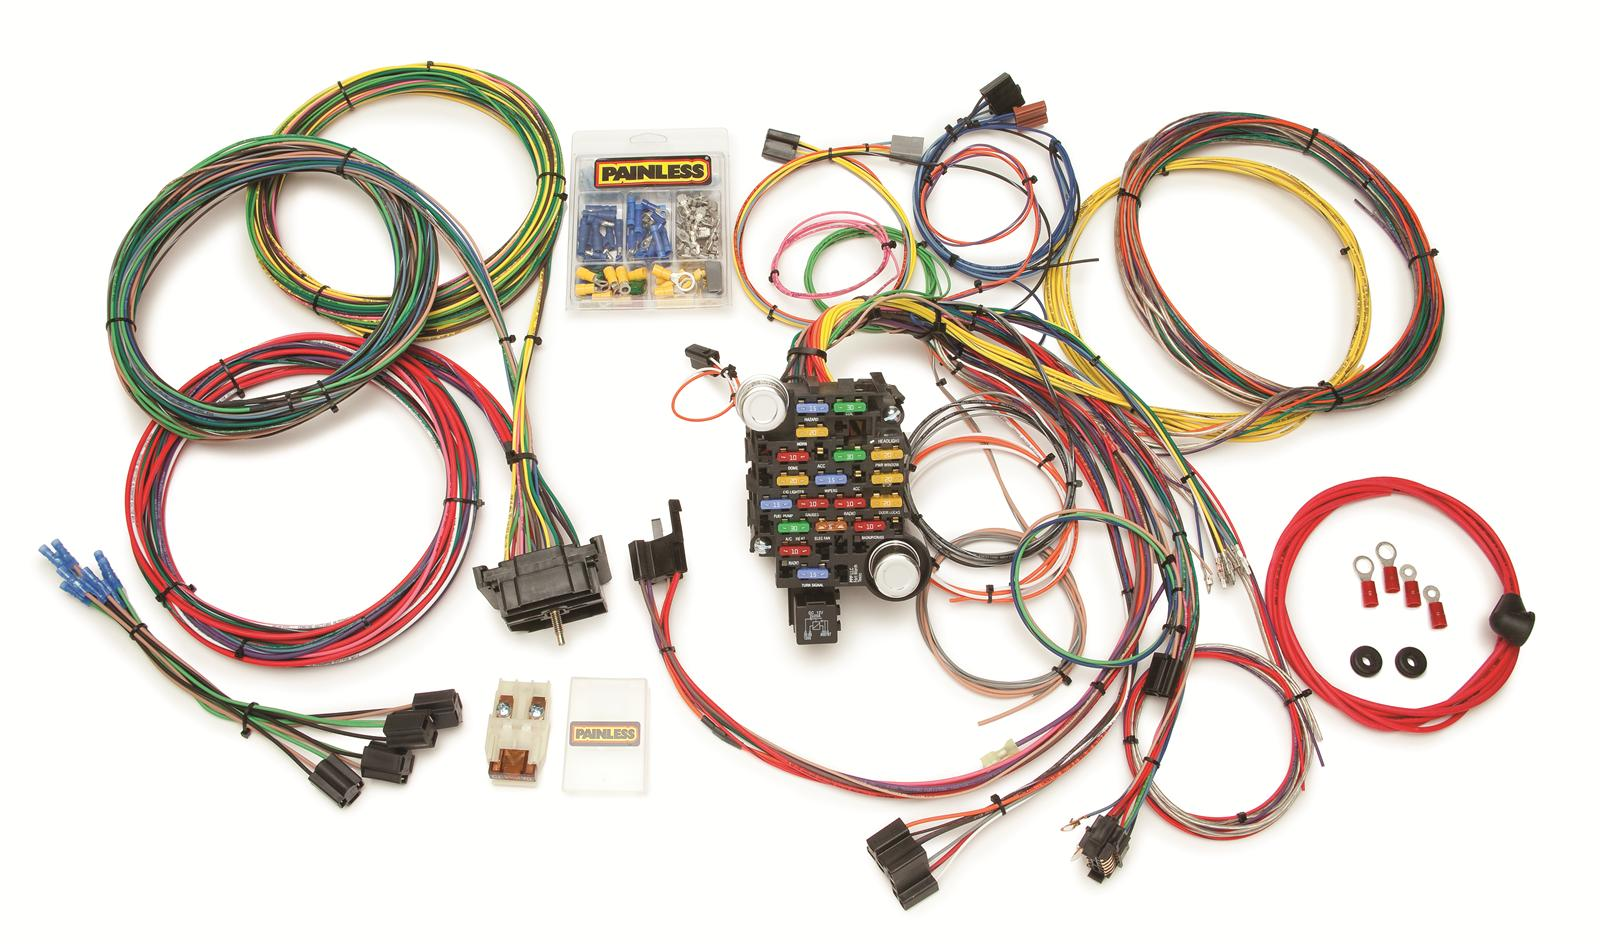 1986 Gmc C15 Wiring Diagram | technical wiring diagram  Gmc C Wiring Harness on 1970 gmc wiring harness, 1990 chevy c1500 wiring harness, gmc truck wiring harness, 1995 gmc wiring harness,